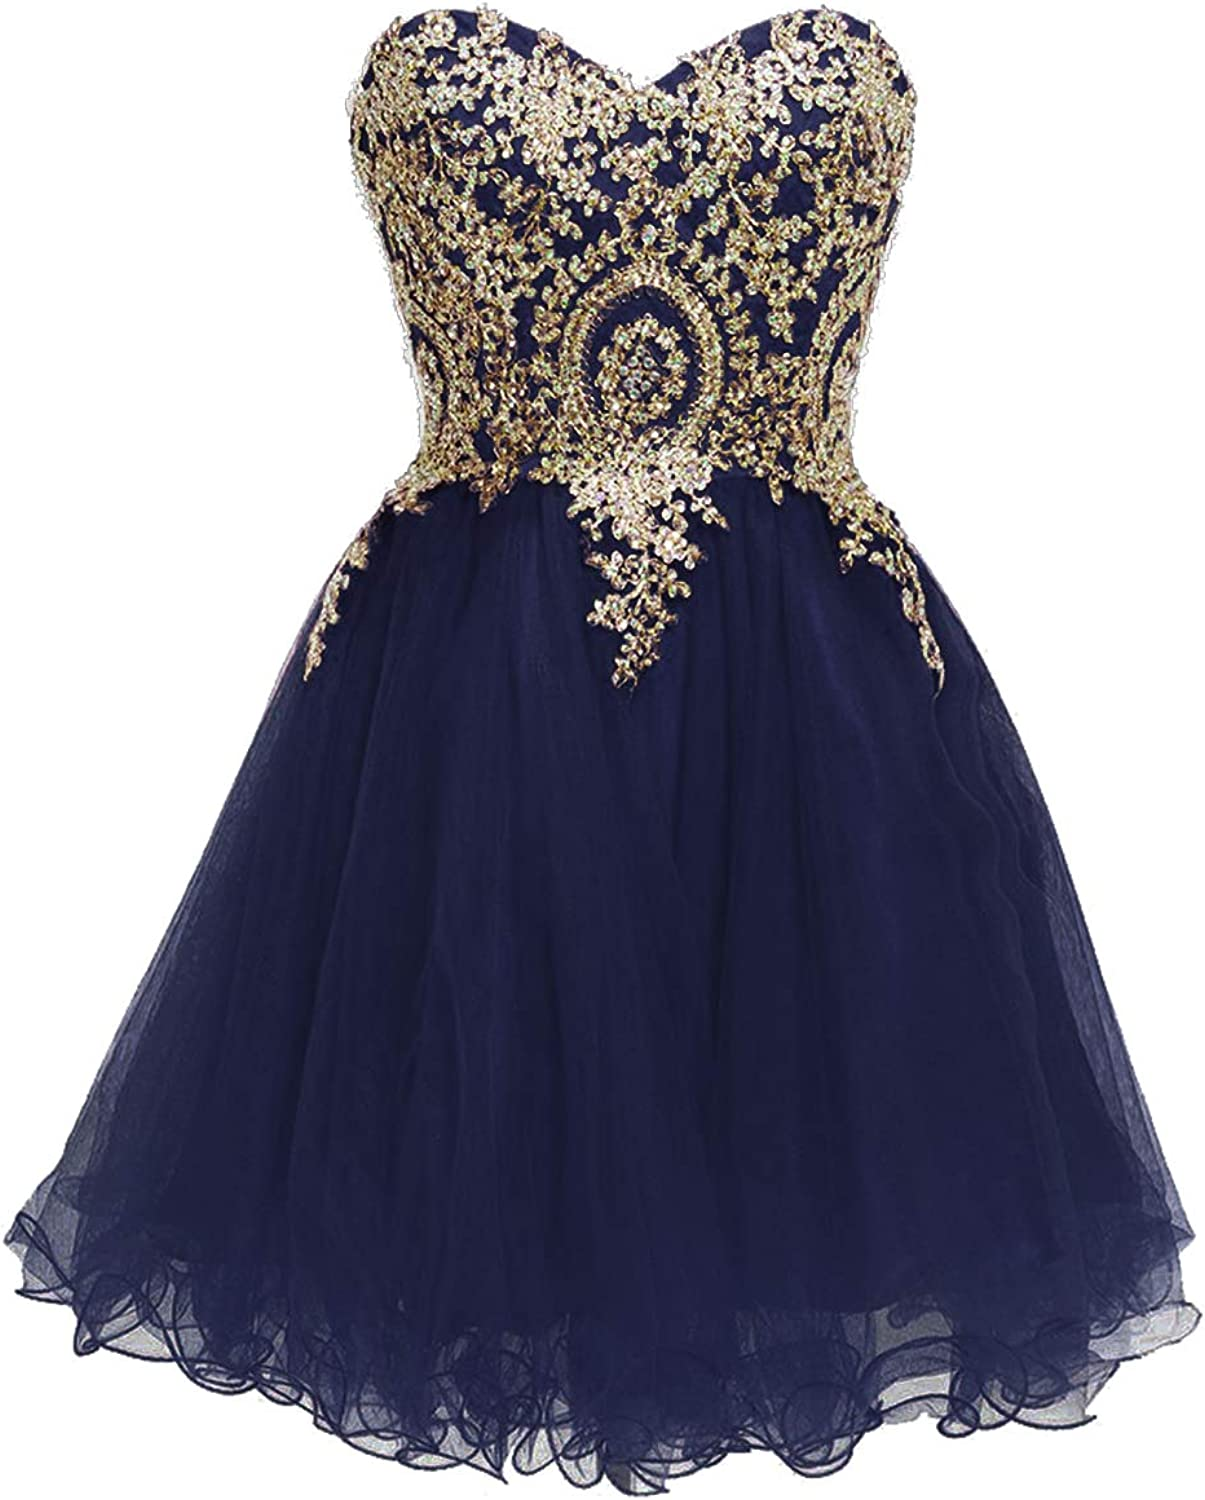 ModeC Prom Dresses Short Homecoming Dress Lace Applique Sparkly Party Cocktail Gown